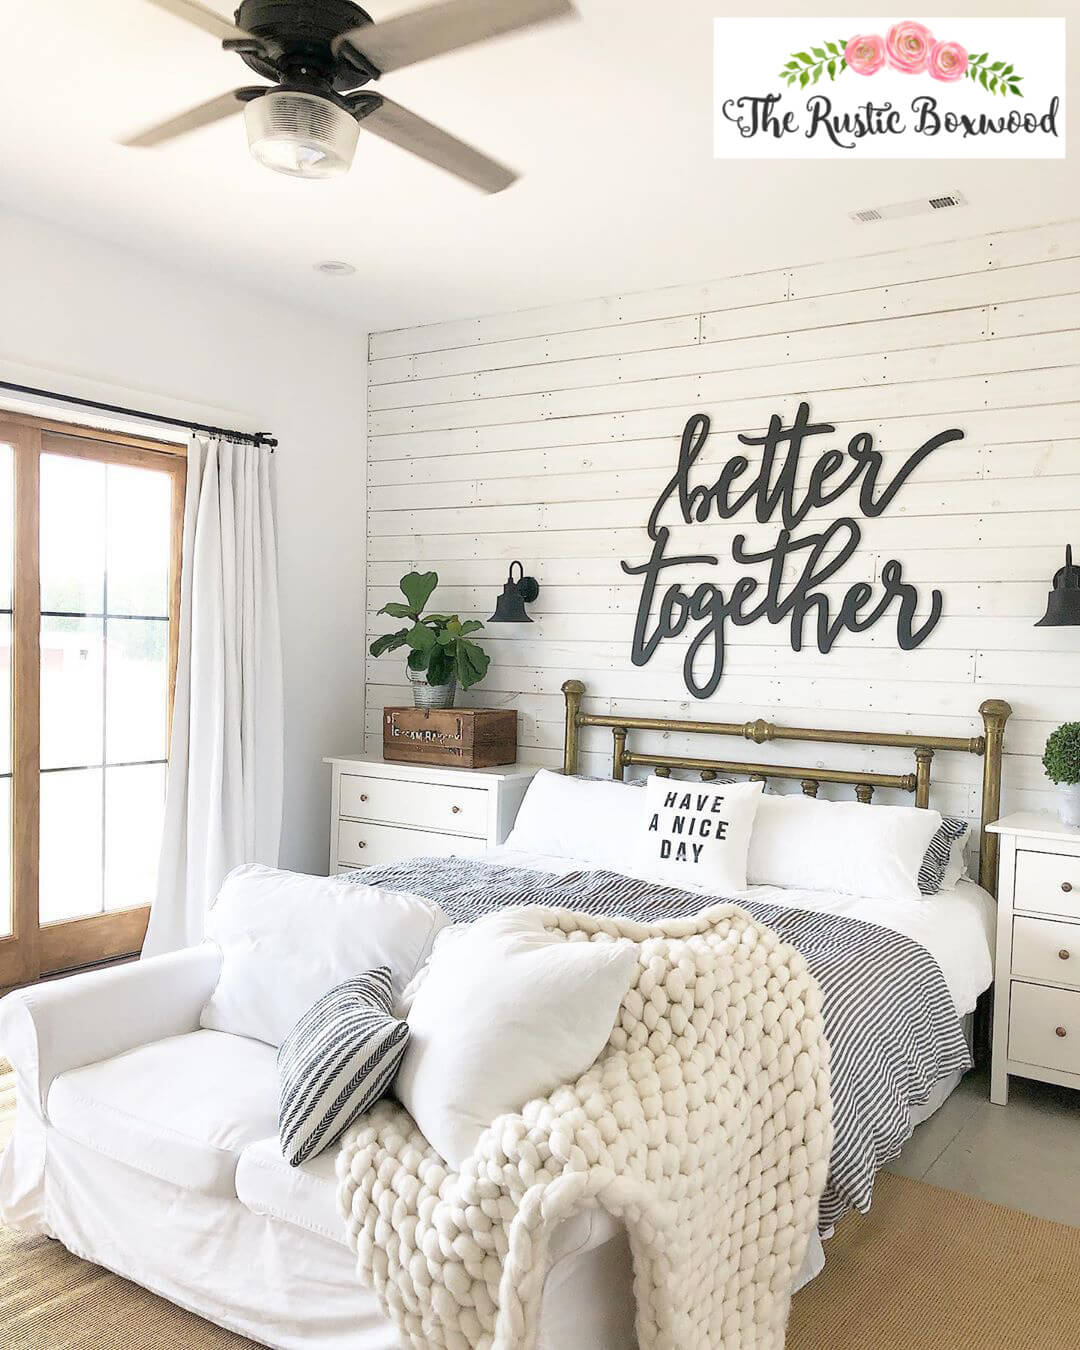 Fabulous Farmhouse Shiplap Wall and Metal Bed